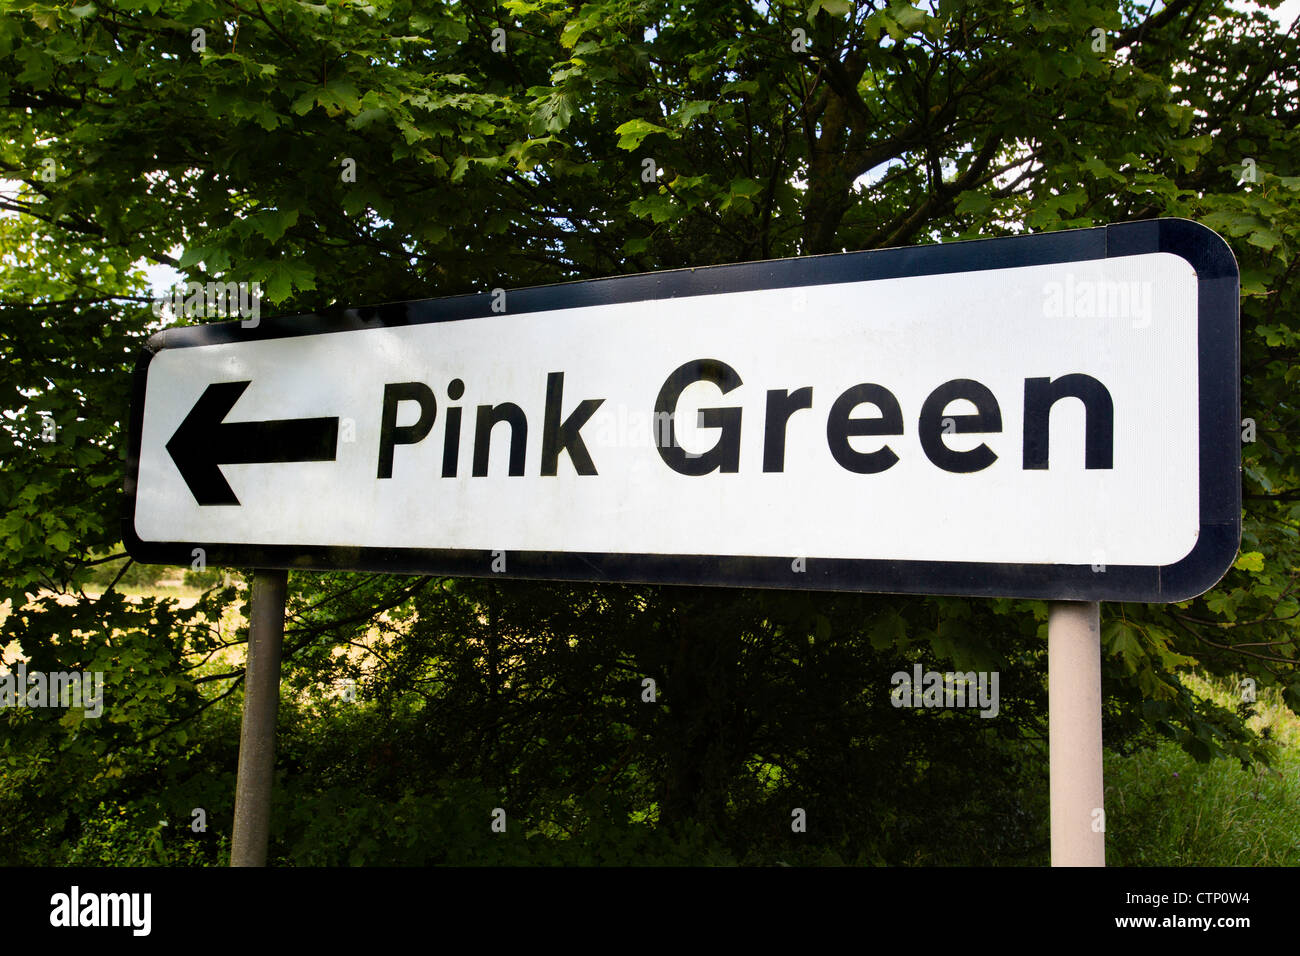 A road sign to the village of Pink Green in Worcestershire, UK - Stock Image